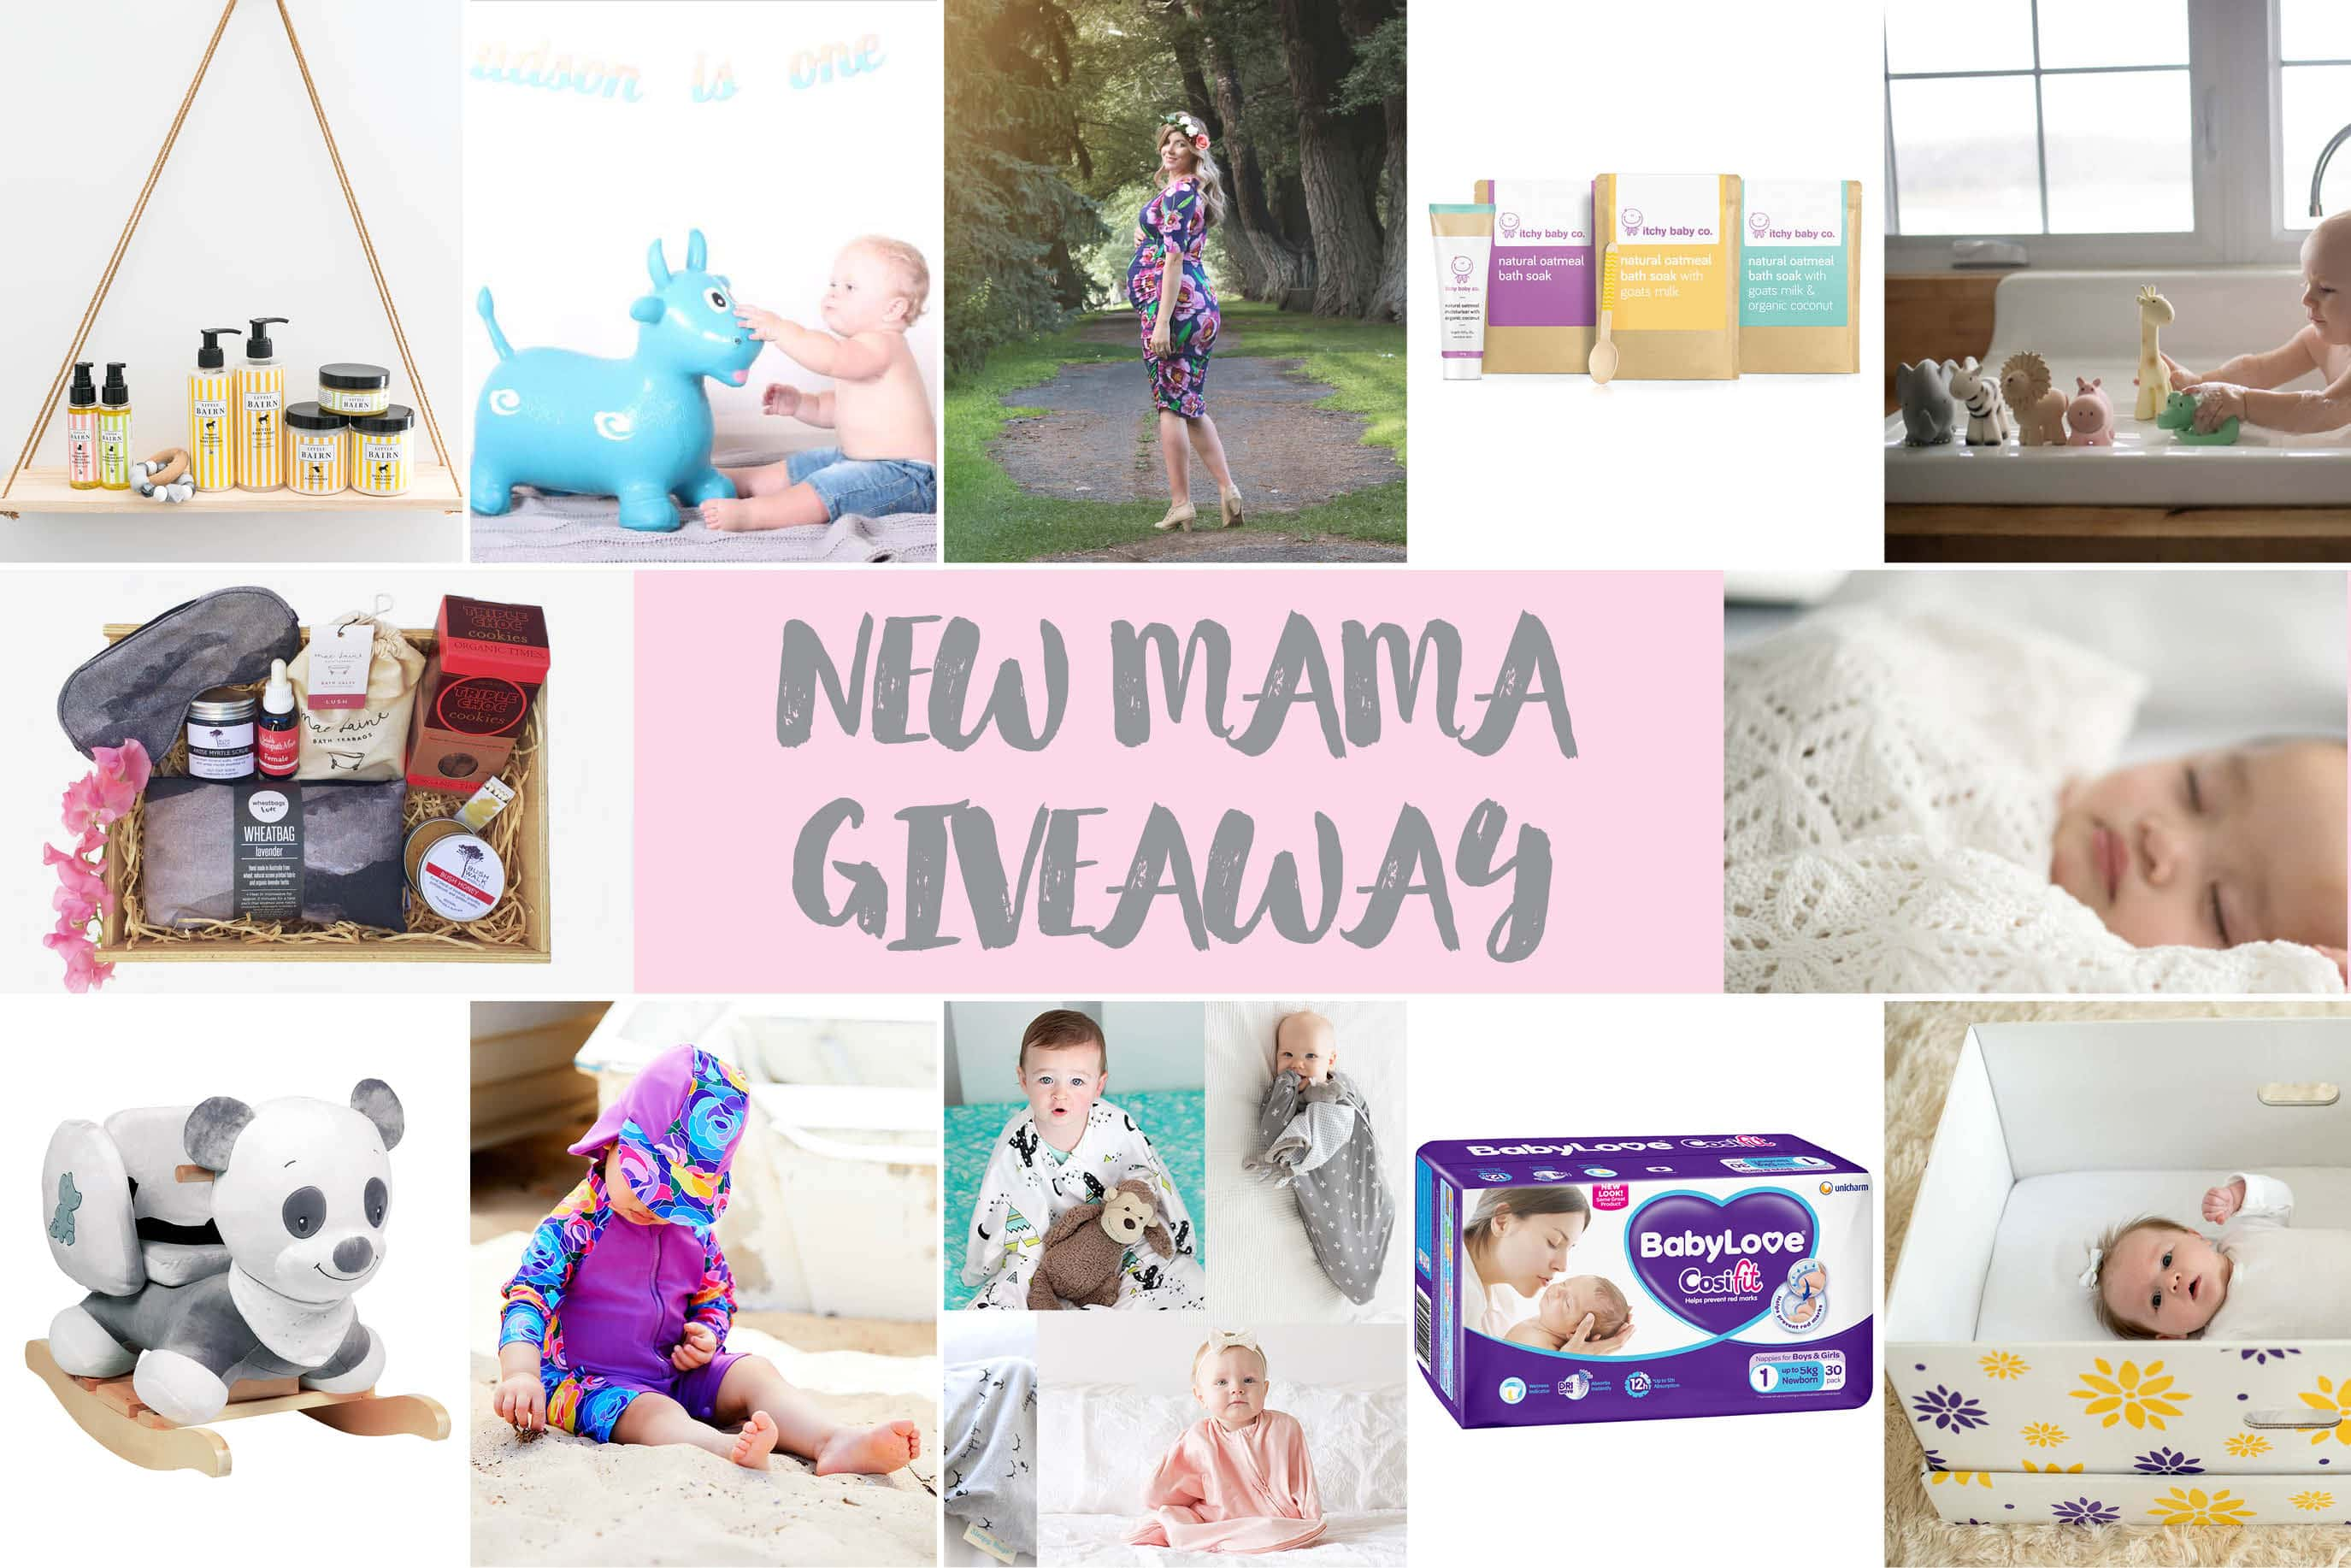 New Mama Giveaway